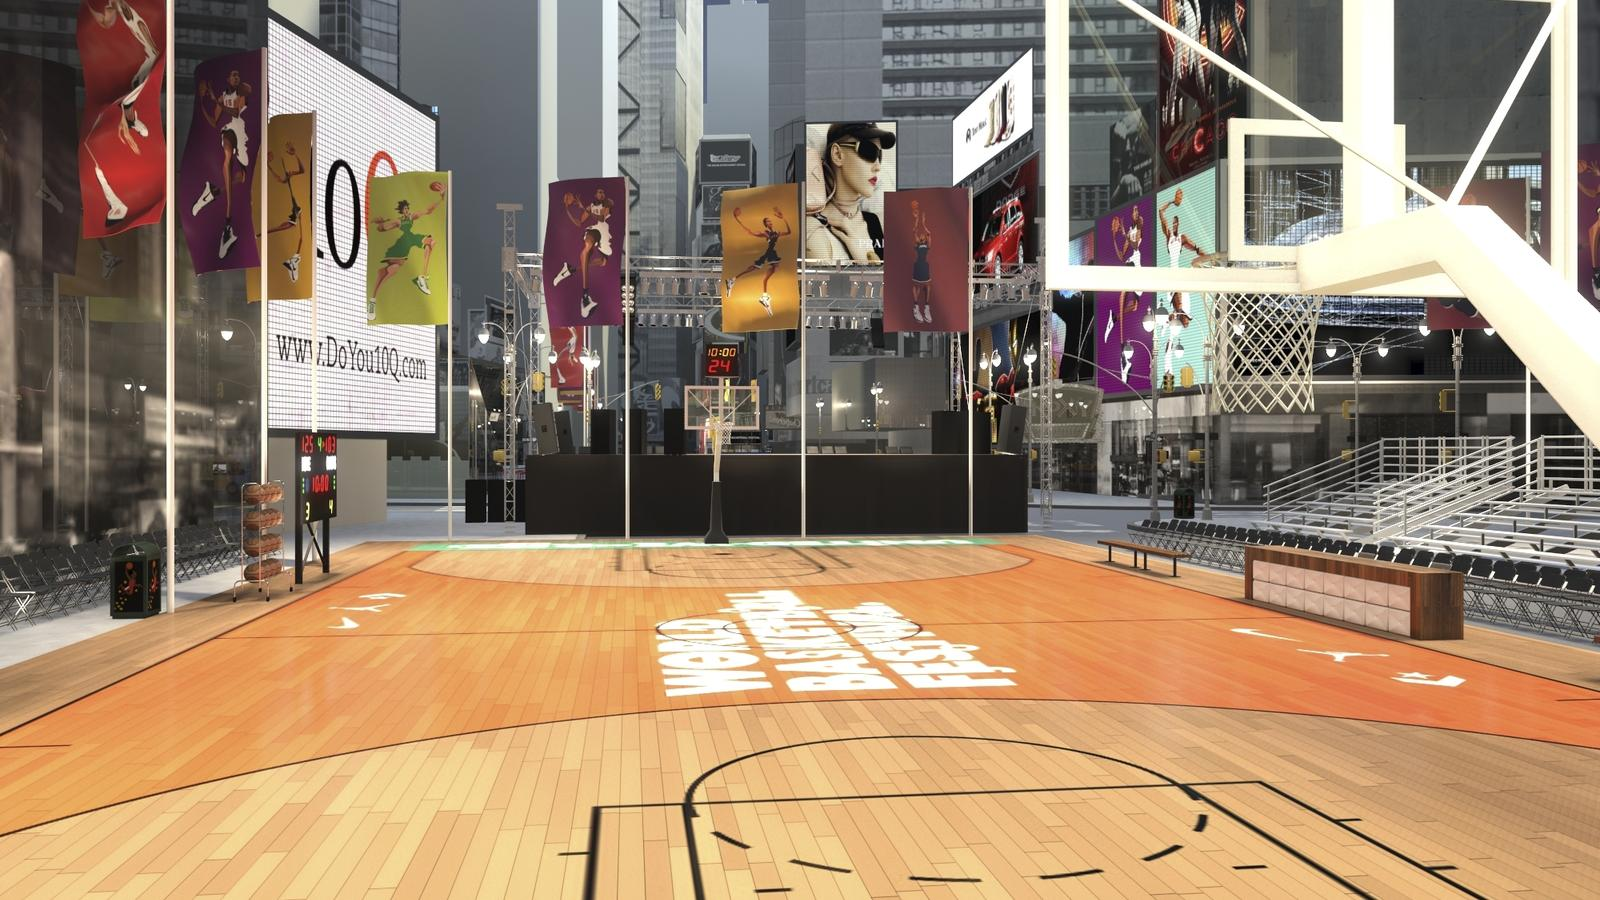 Music and Basketball Unite in NYC